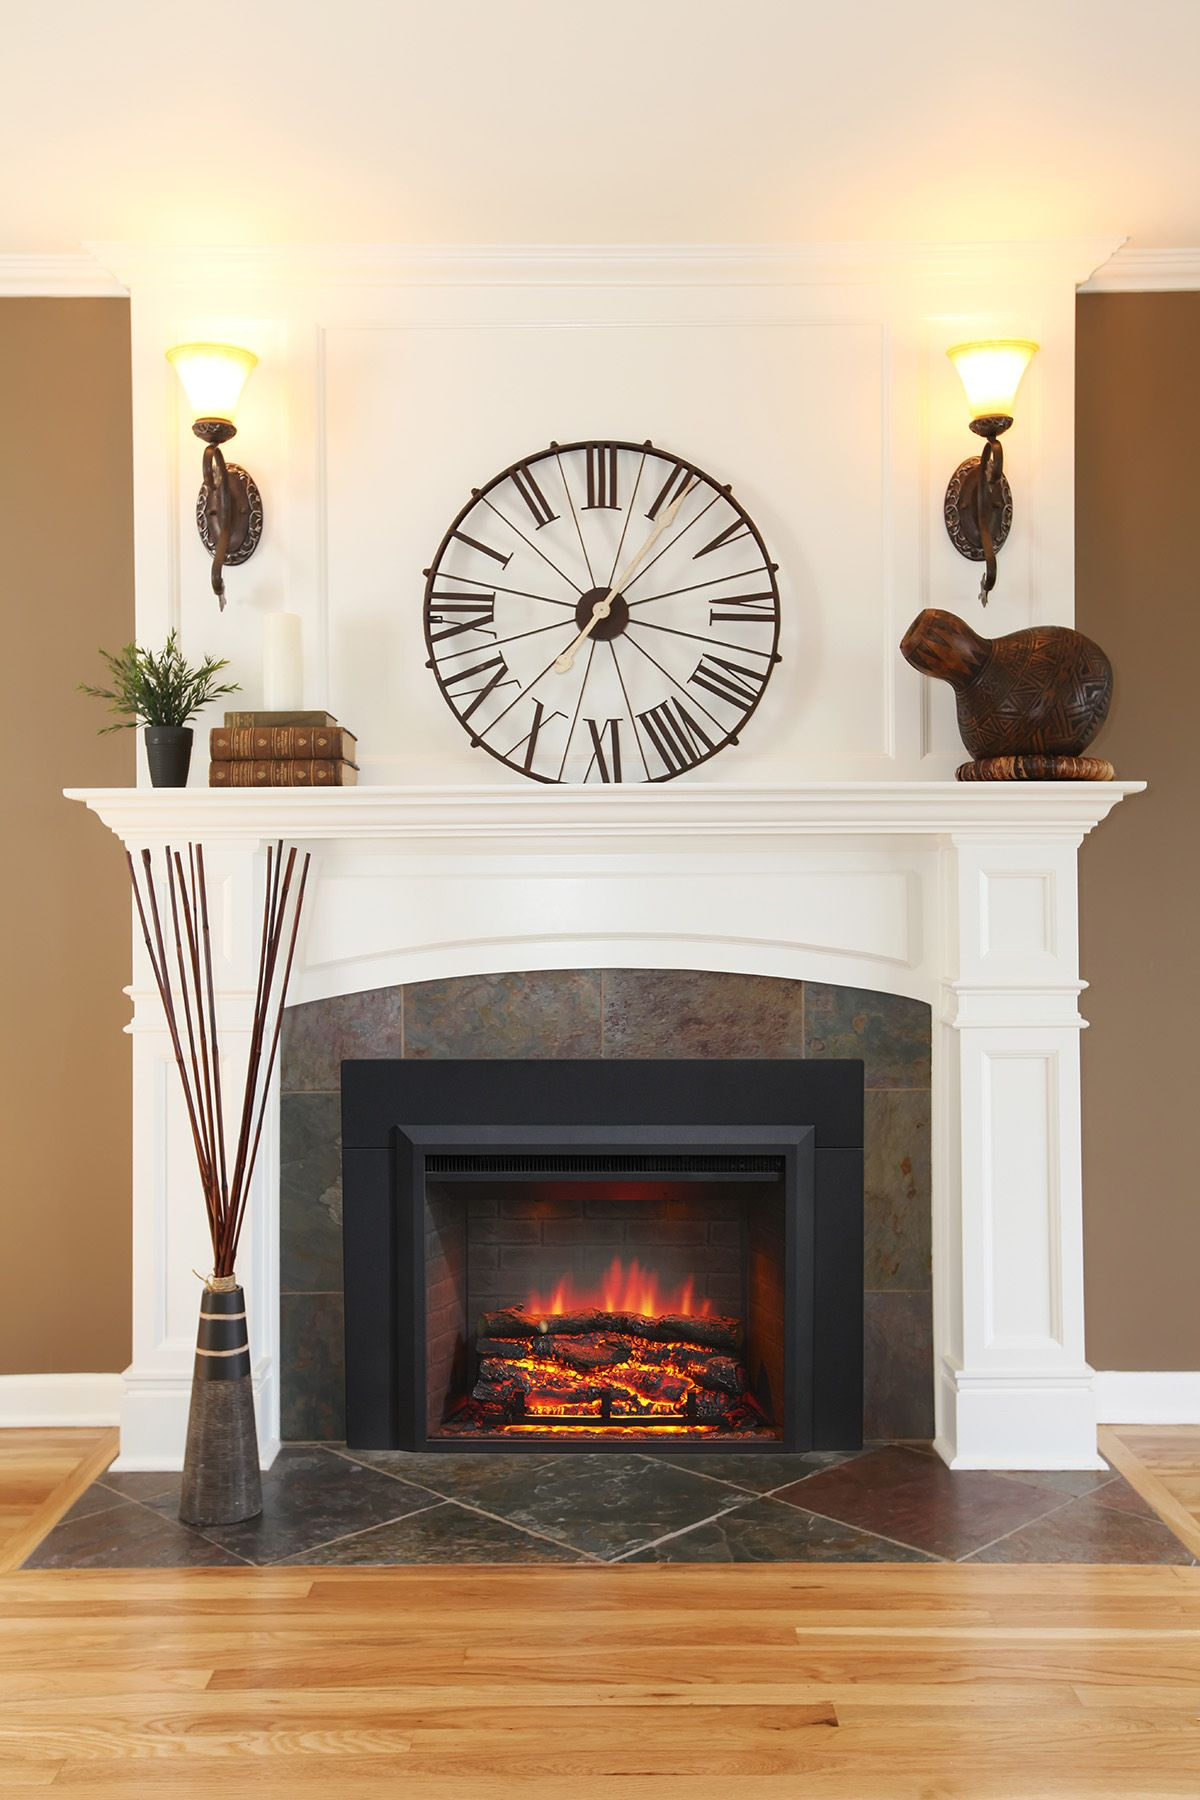 Bedroom electric fireplace - An Electric Fireplace Insert Convert Your Old Wood Burning Fireplace Into An Easy To Use